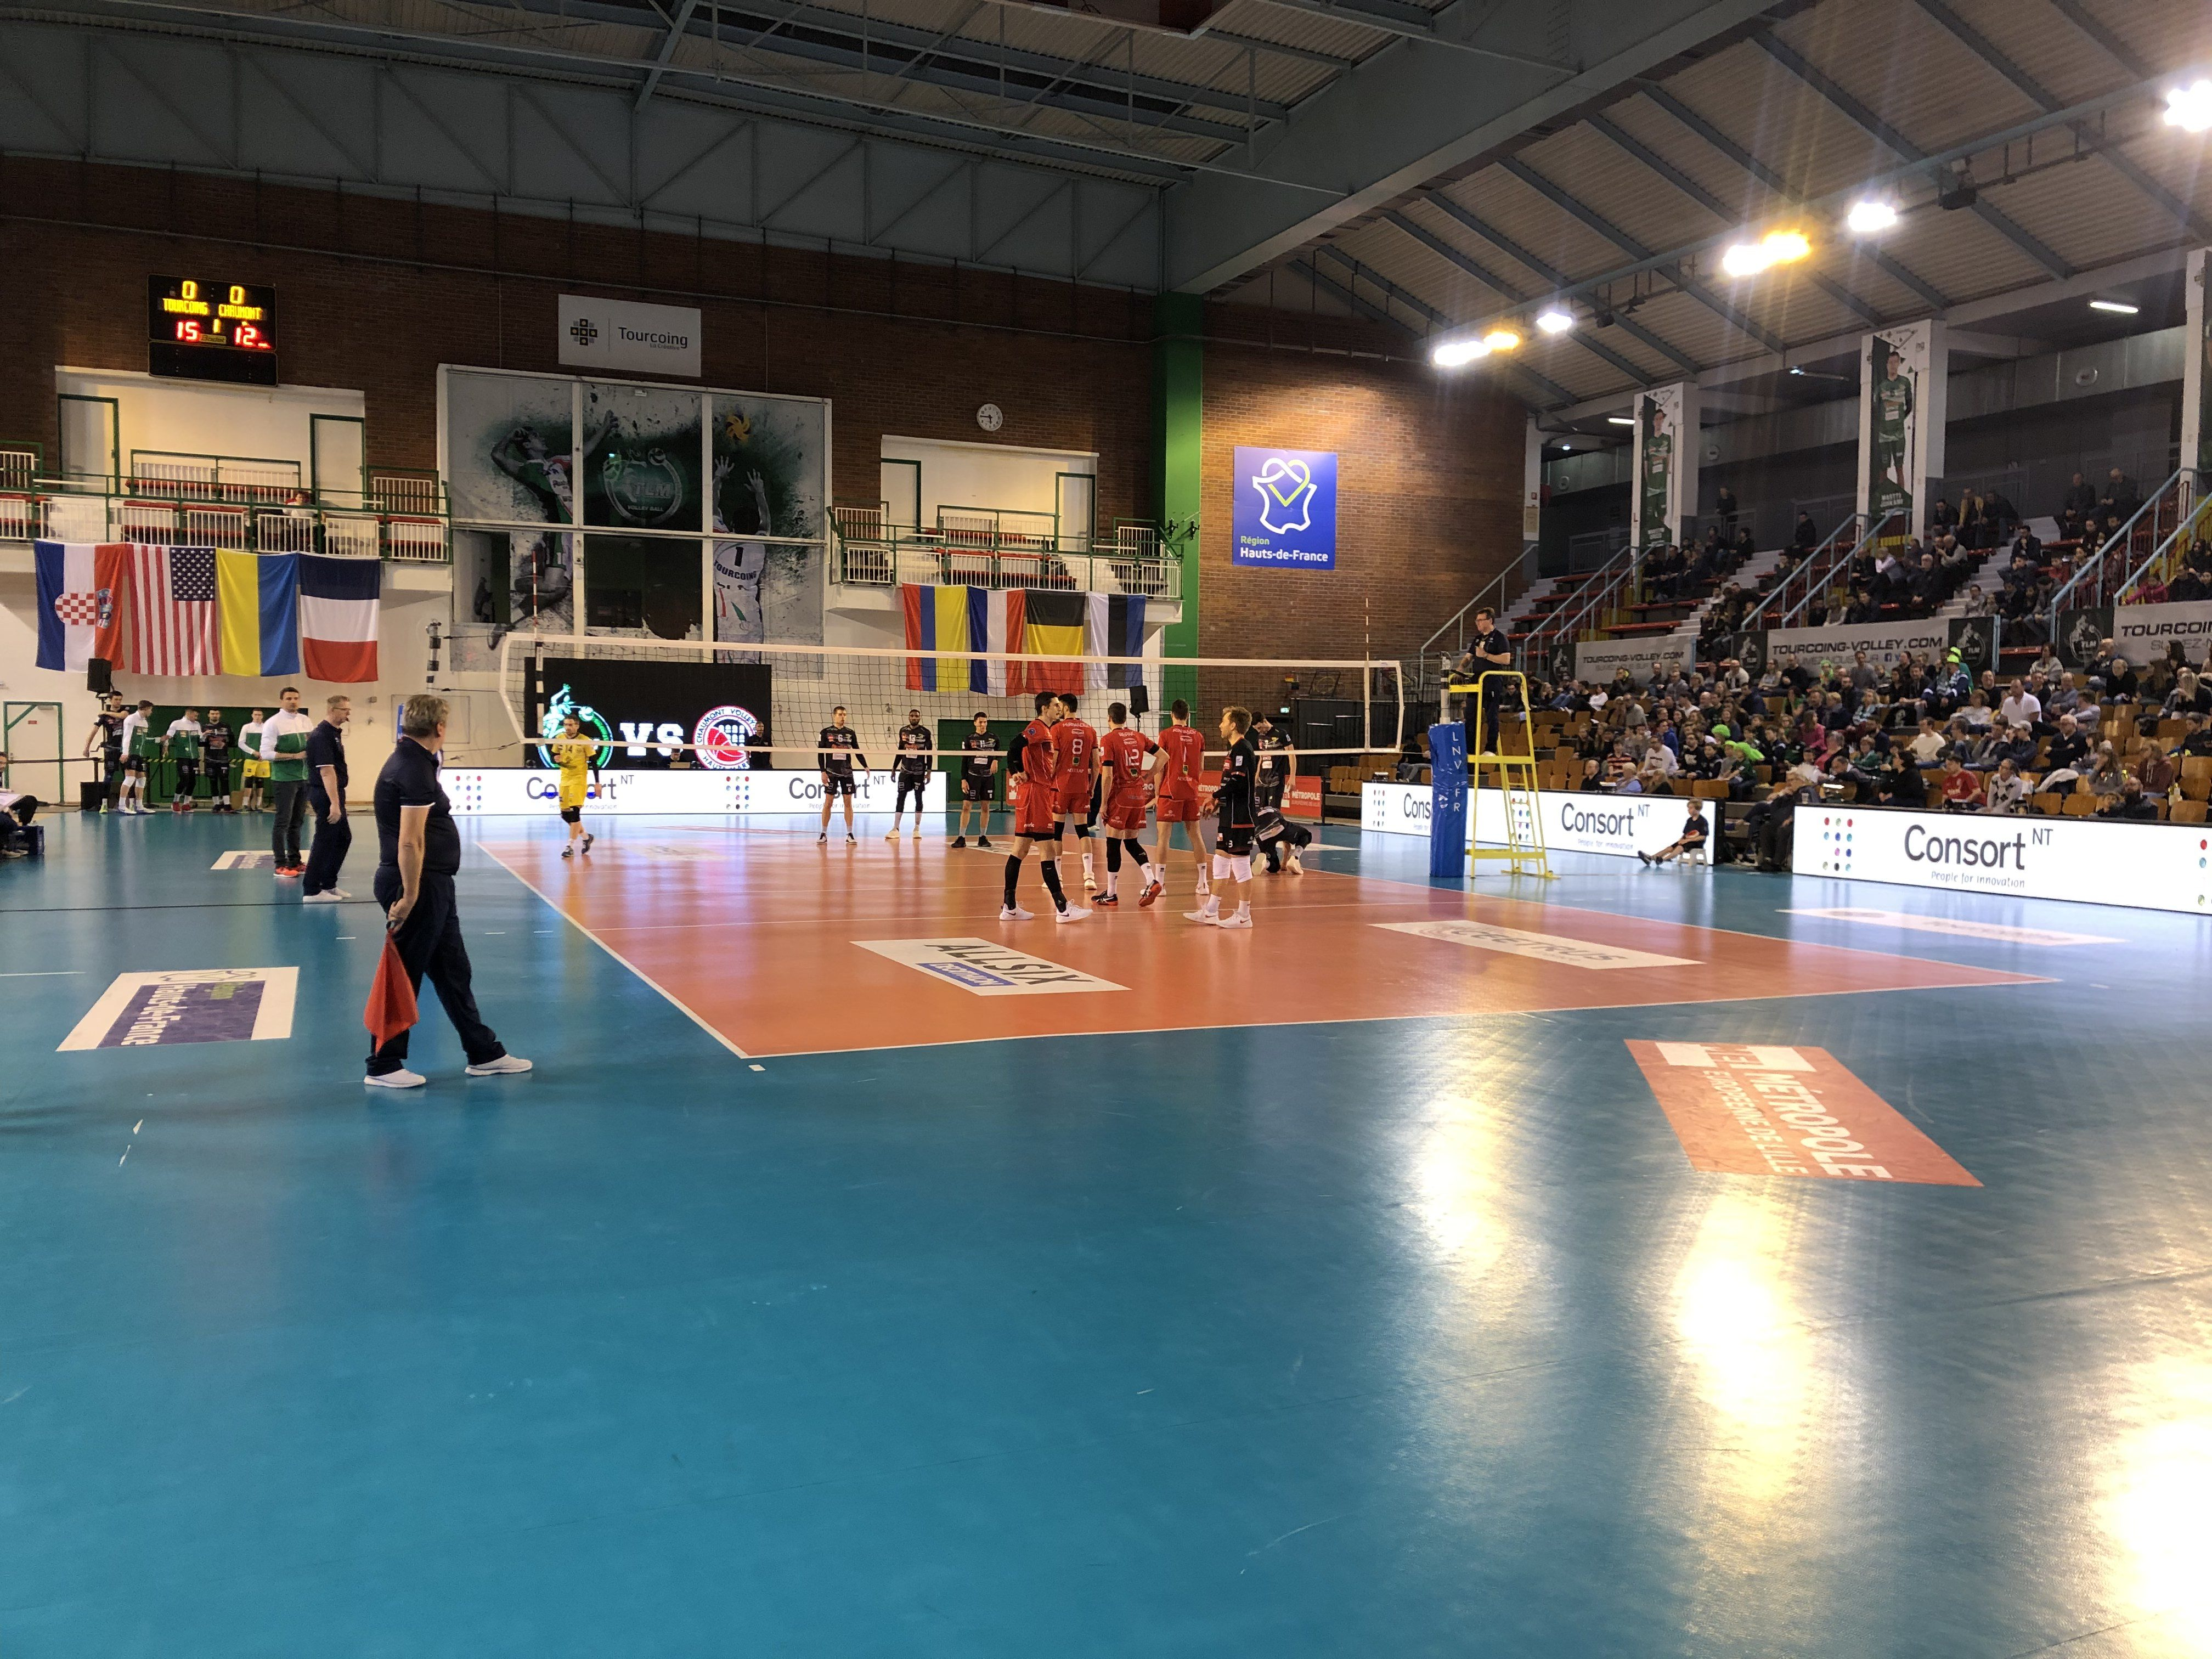 20e journée de Ligue A Masculine : Tourcoing LM – CVB 52